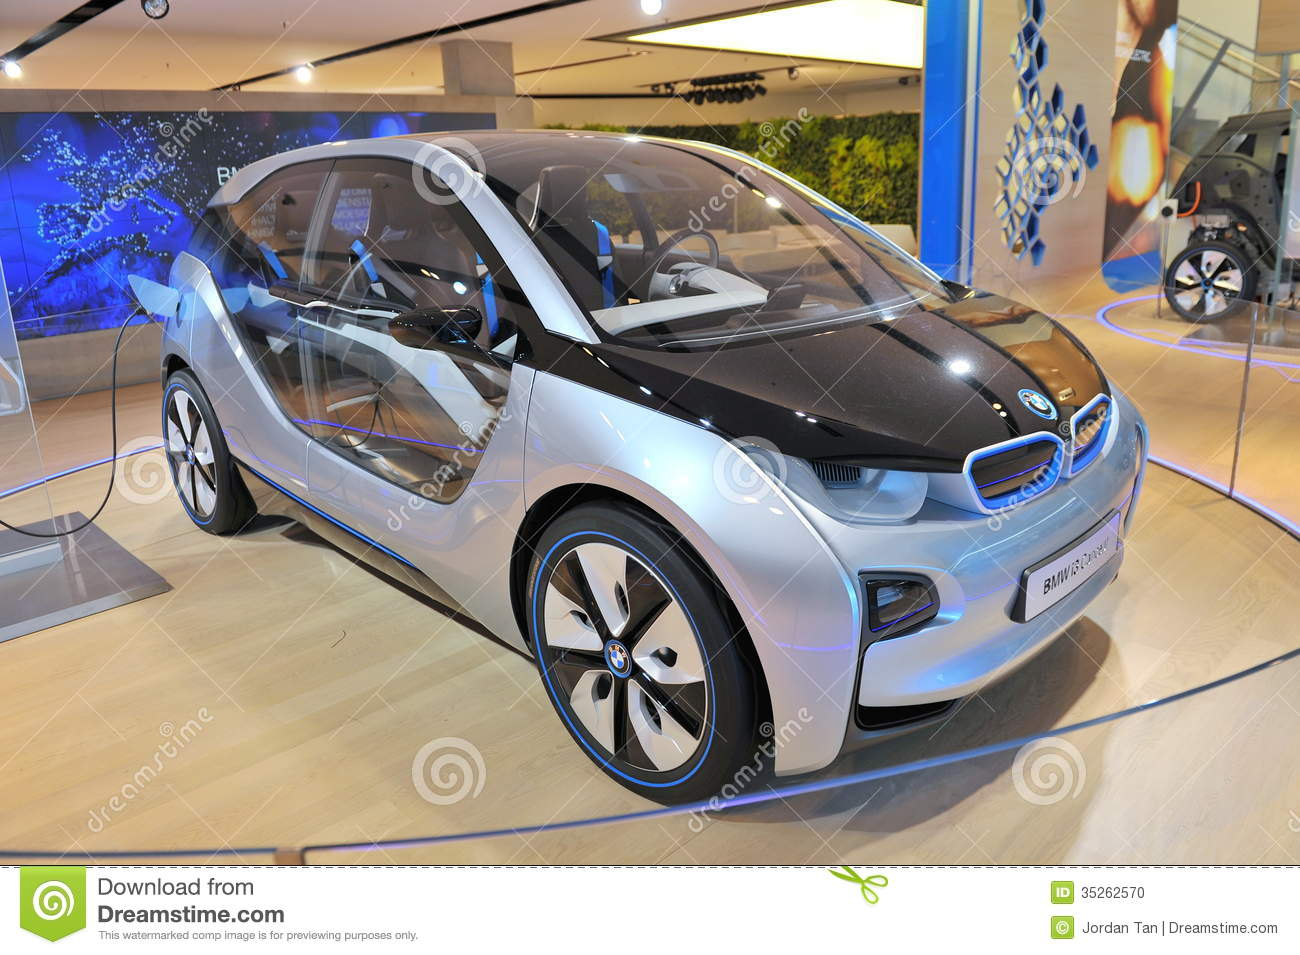 Bmw I3 Concept Car On Display In Bmw Welt Editorial Image Image Of